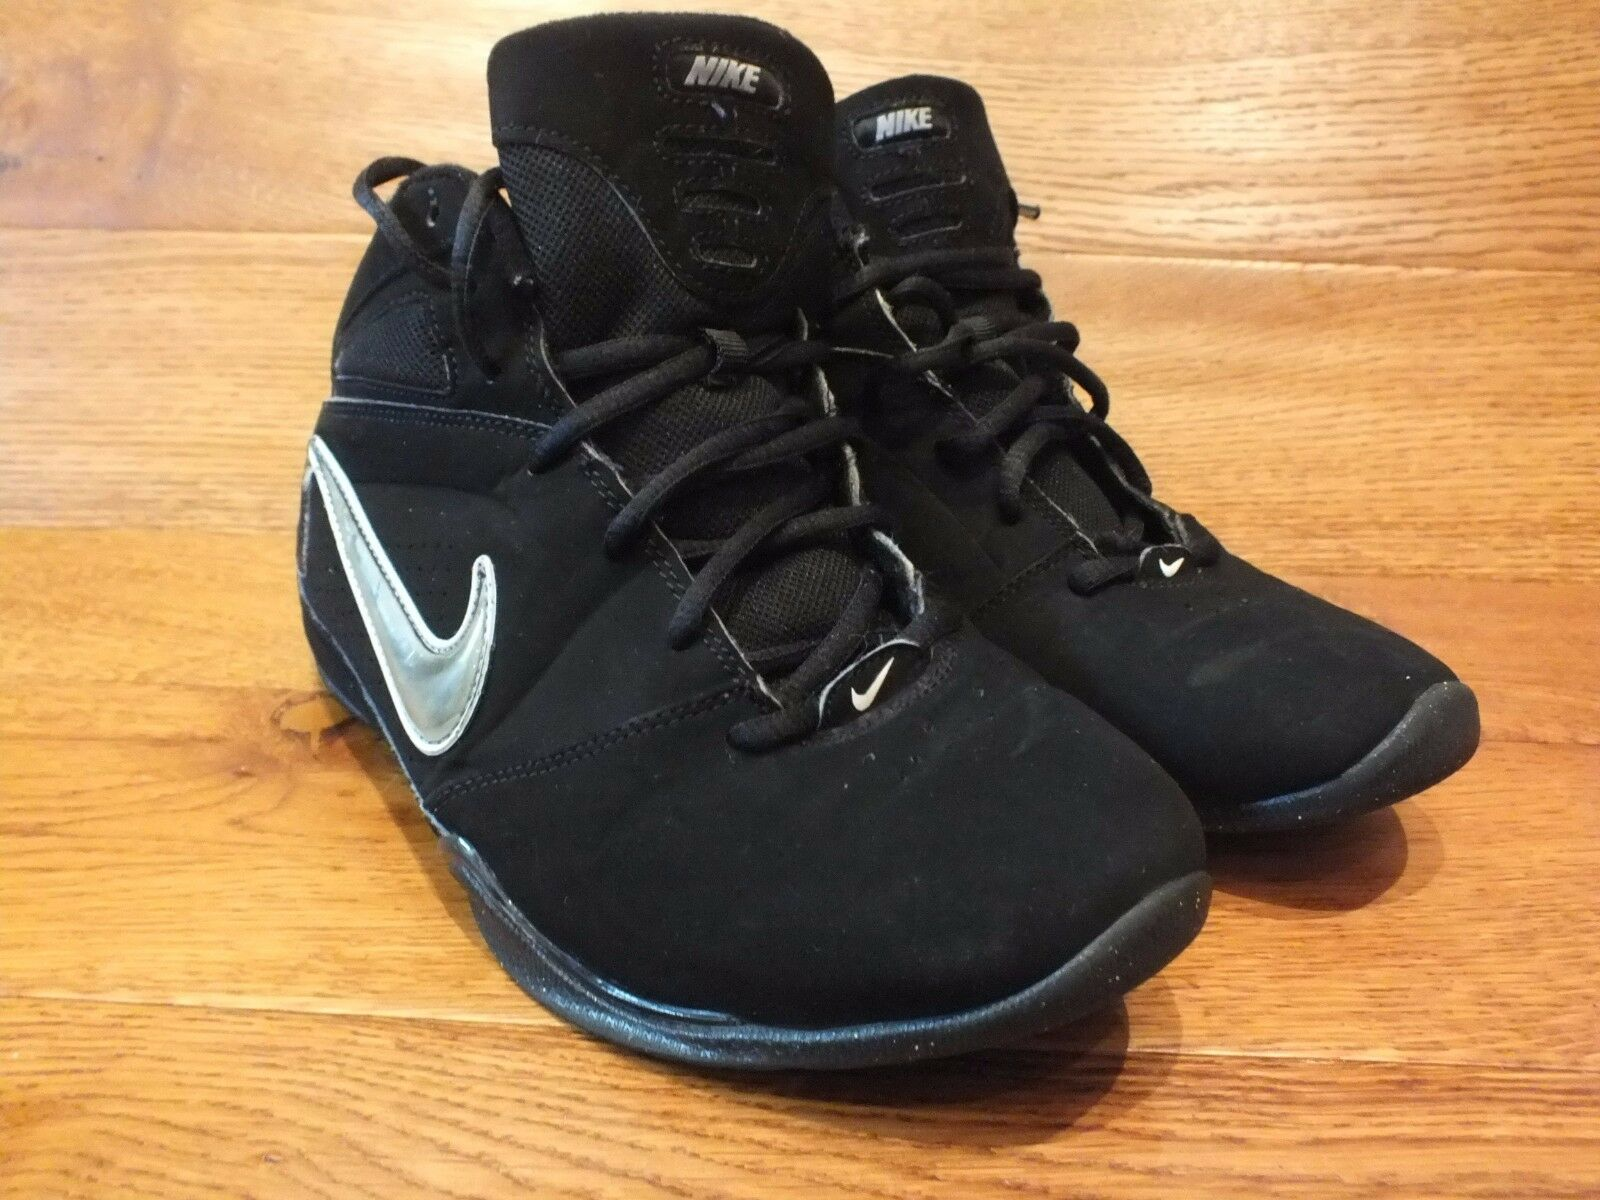 Nike Press GS   PS Black  Hi Top Casual Trainers Size UK 6  EU 40